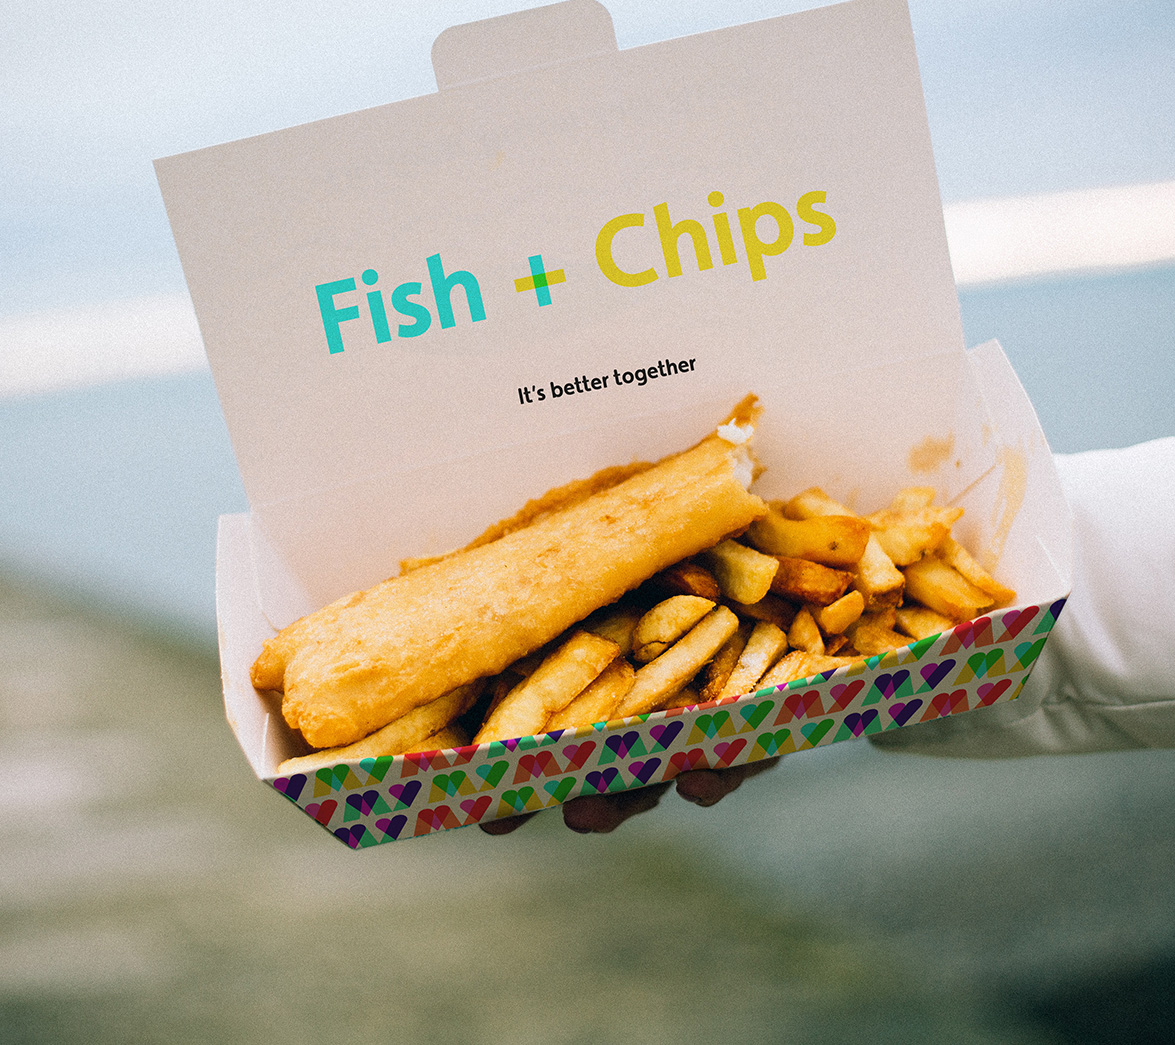 Fish and chips packaging design for new startup brand My Date Night, designed by White Bear Studio